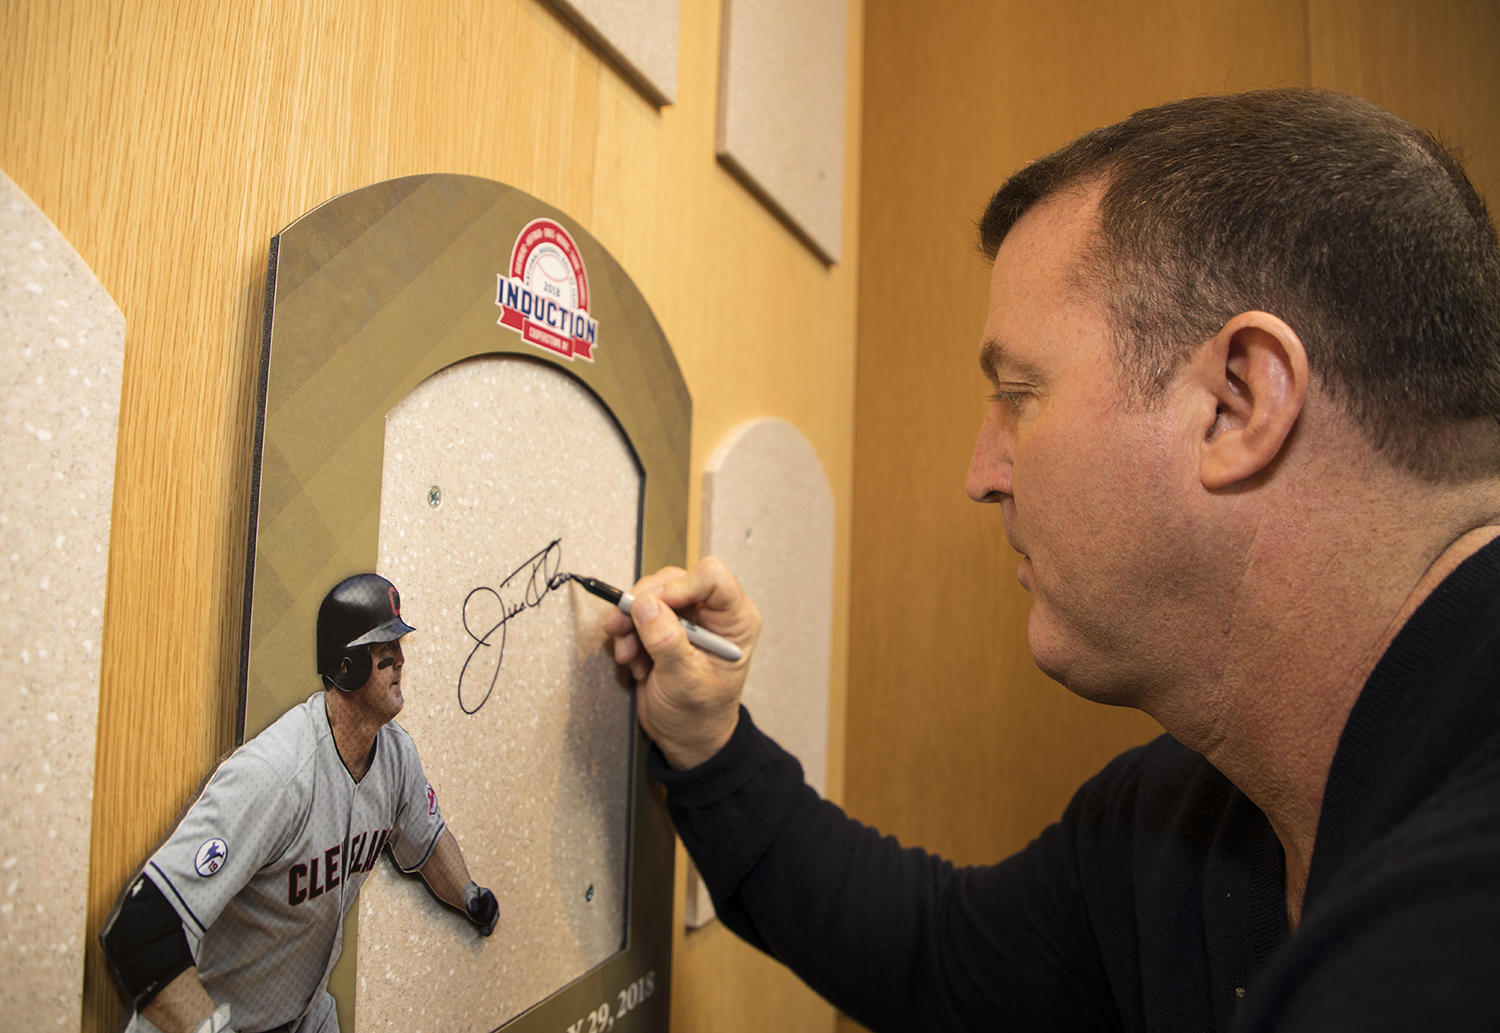 Hall of Famer Jim Thome signs his plaque backer during his Orientation Visit in Cooperstown on Feb. 27, 2018. (Milo Stewart Jr./National Baseball Hall of Fame and Museum)